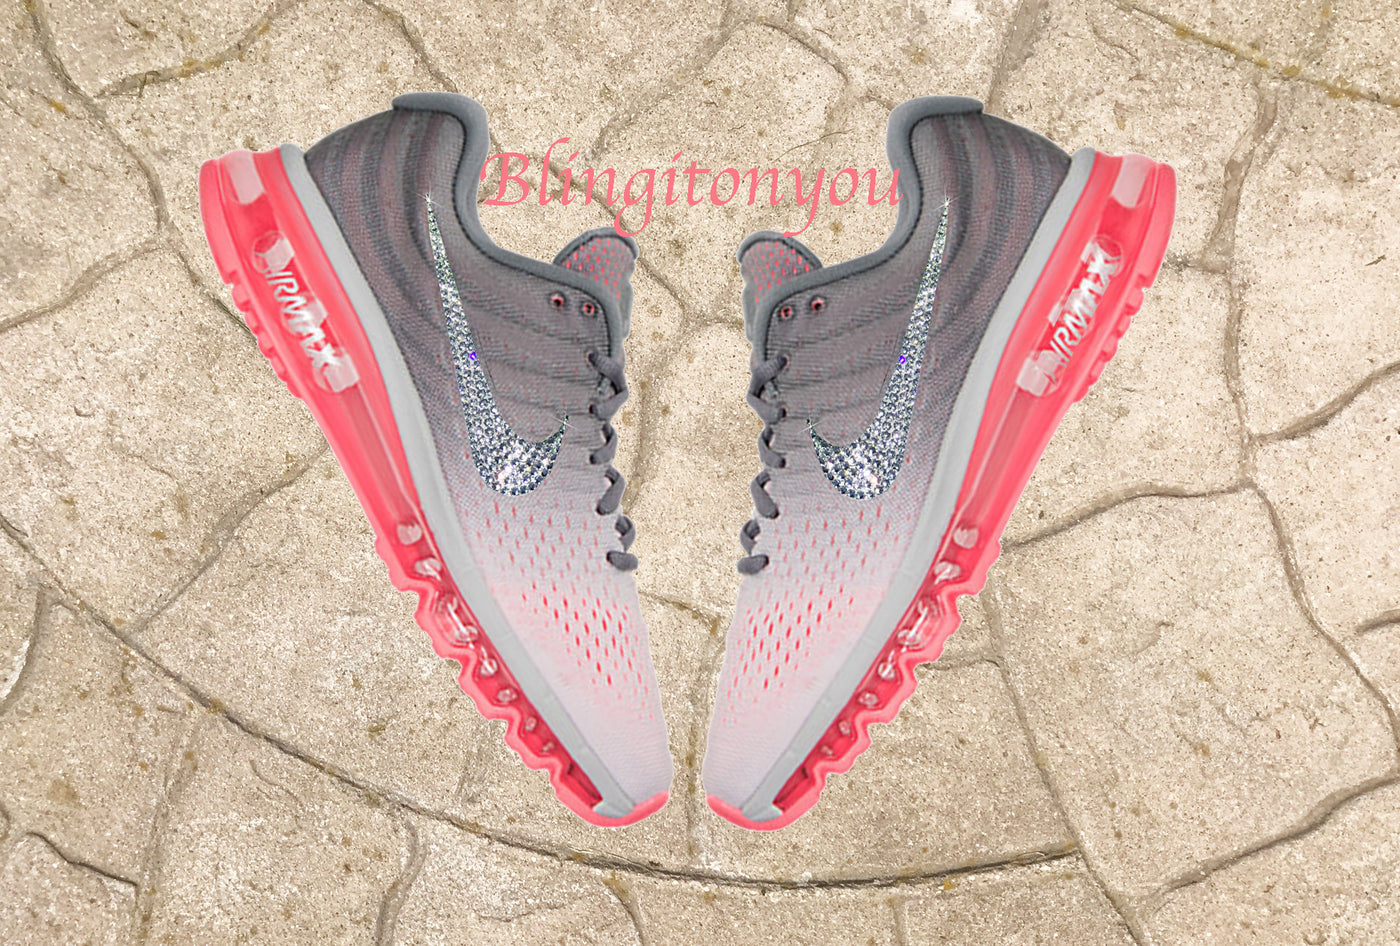 6594f248cf53 New Custom Blinged Swarovski Nike Women's Air Max 2017 Shoes | Nike Shoes  Customized with Swarovski Crystals